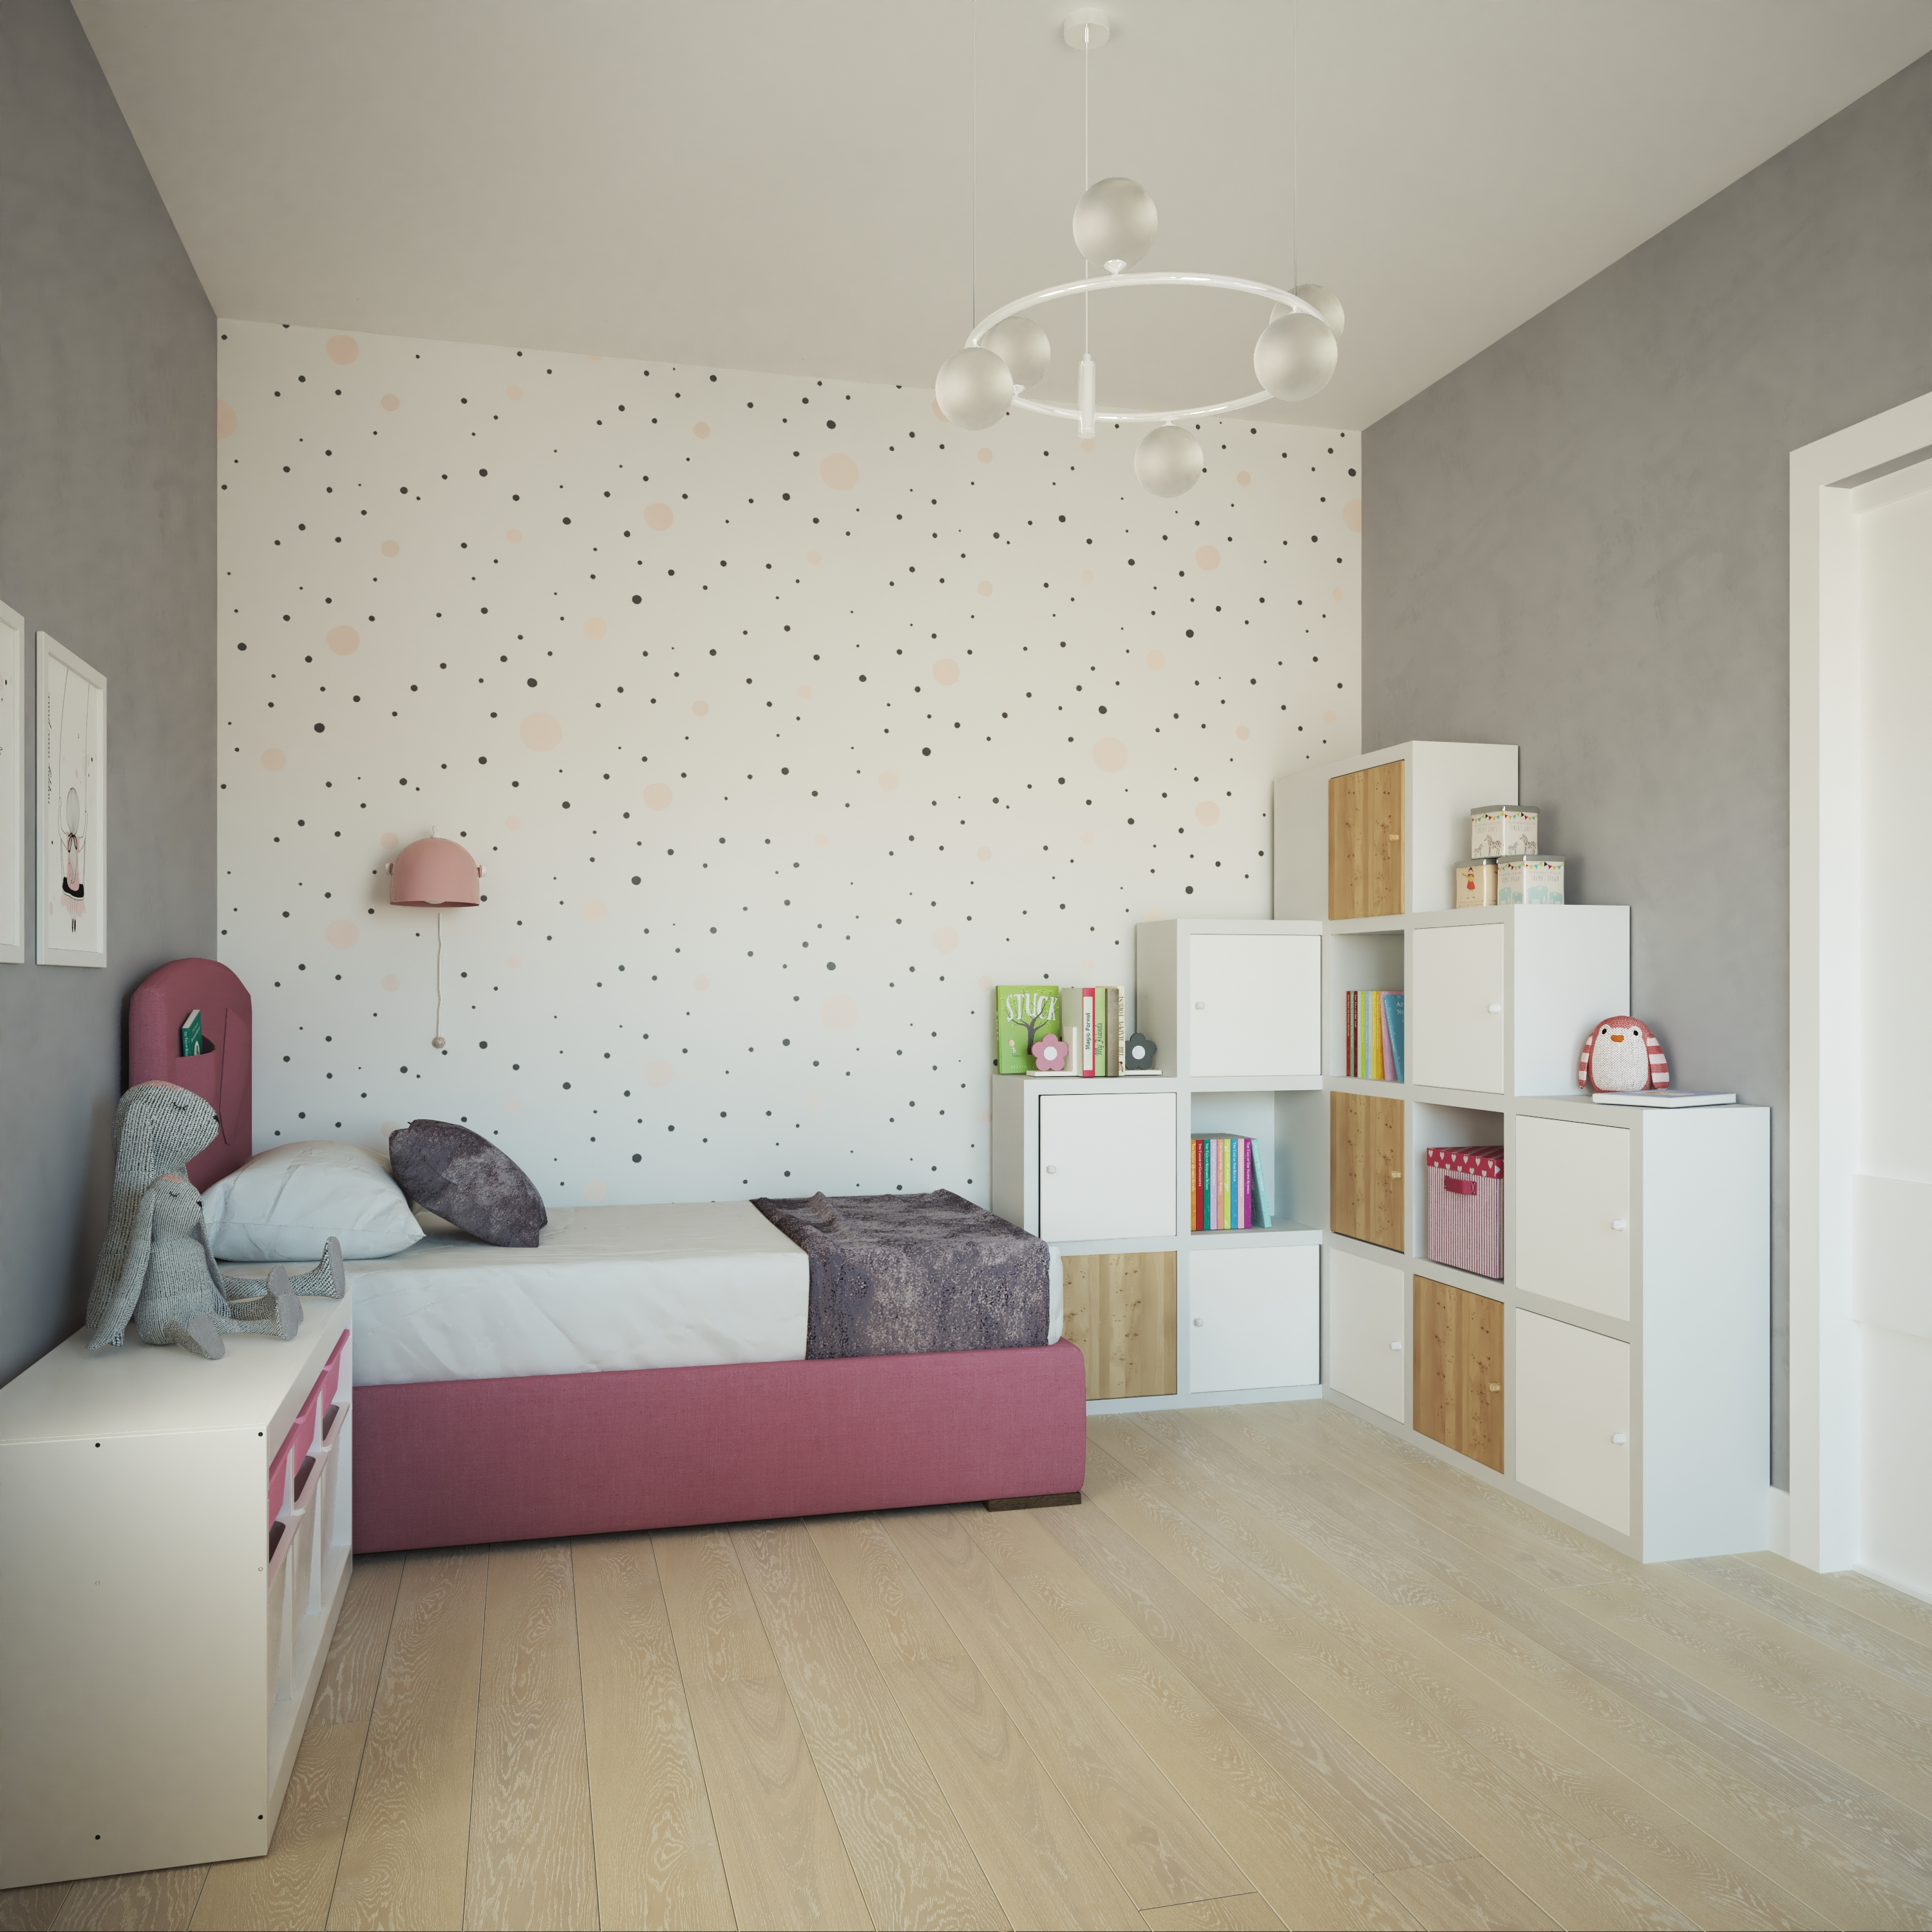 Bedroom visualization for a child